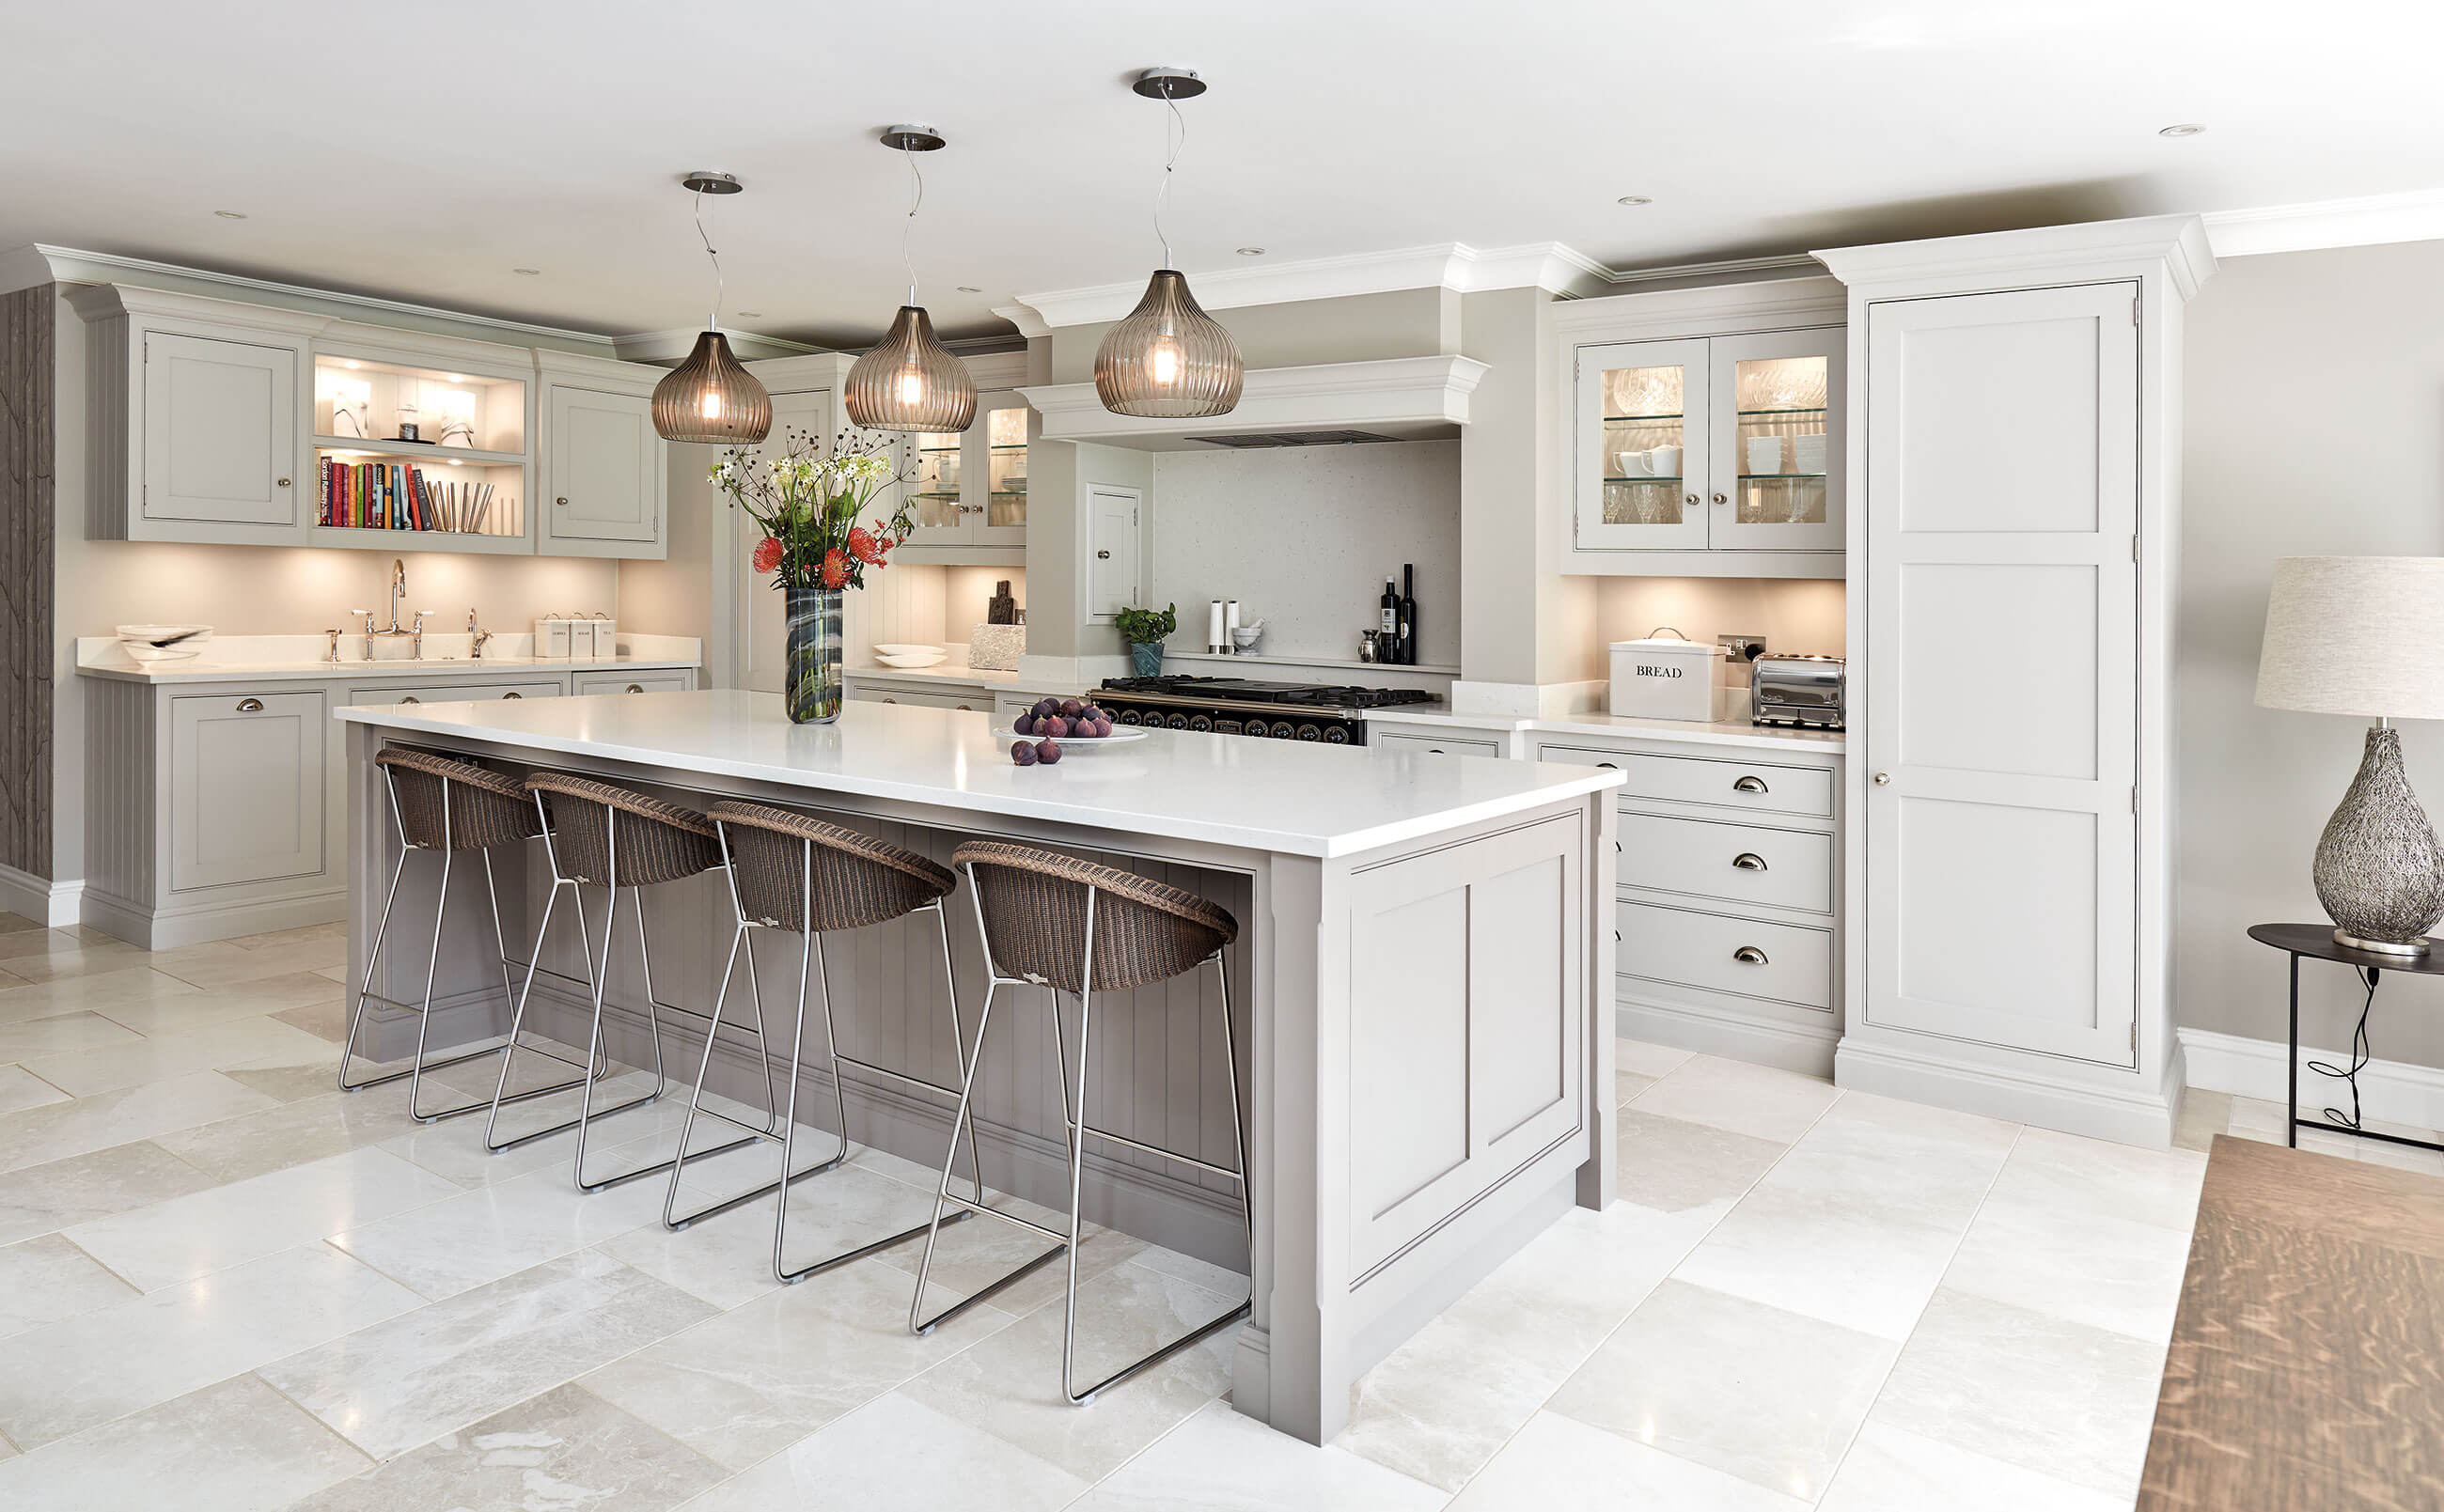 Kitchen Designs: Traditional & Contemporary Kitchens